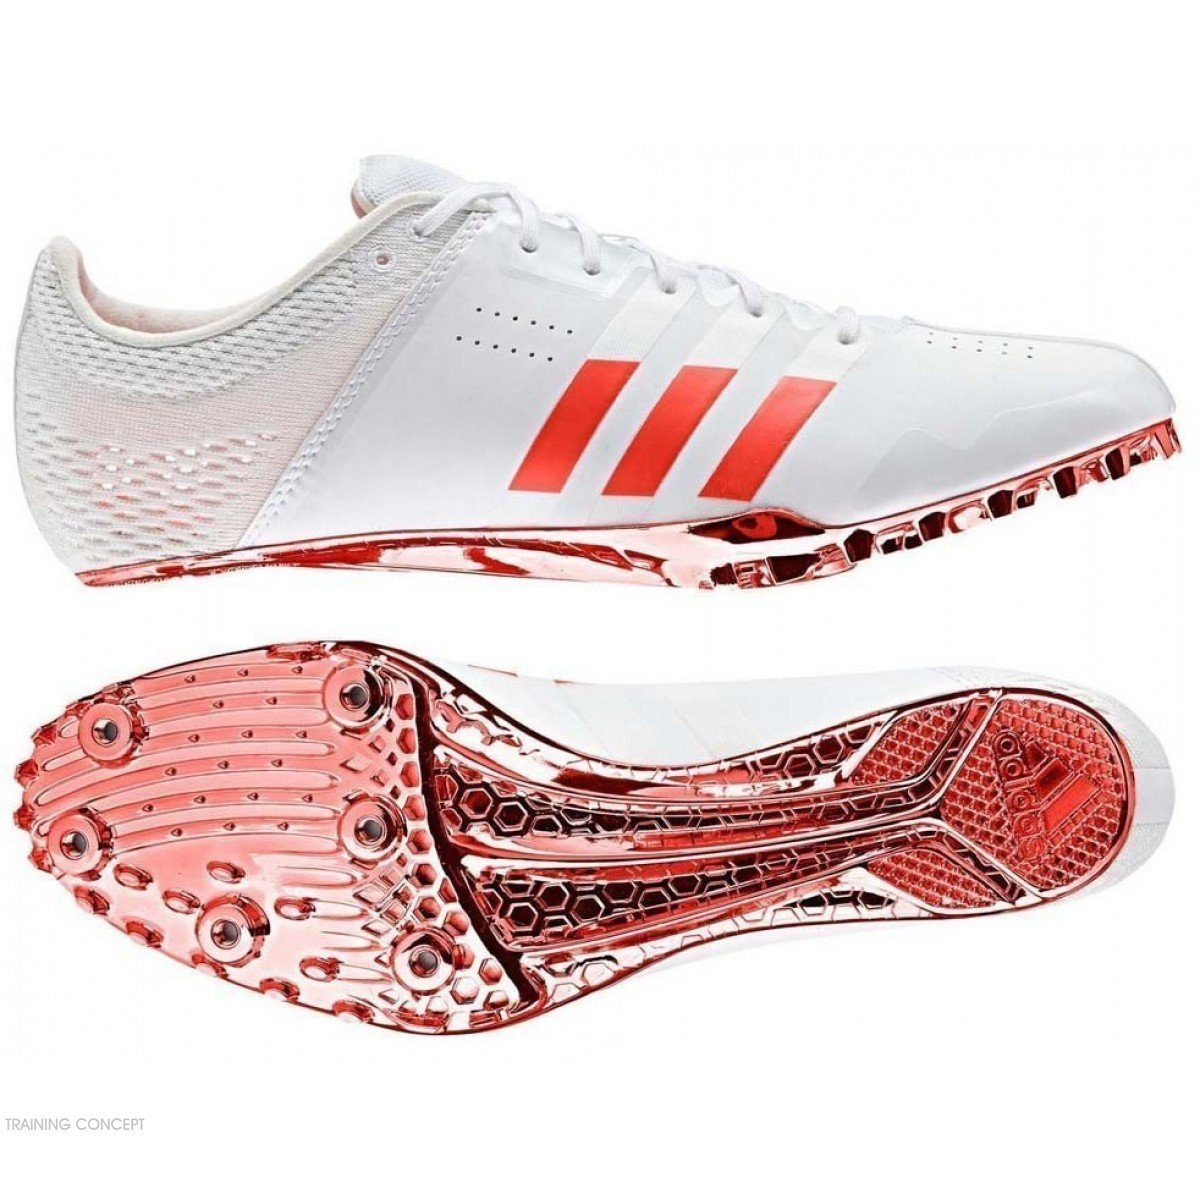 Pointes Finesse Finesse A A Adizero Chaussure Chaussure Pointes Chaussure Adizero UqzMSVp